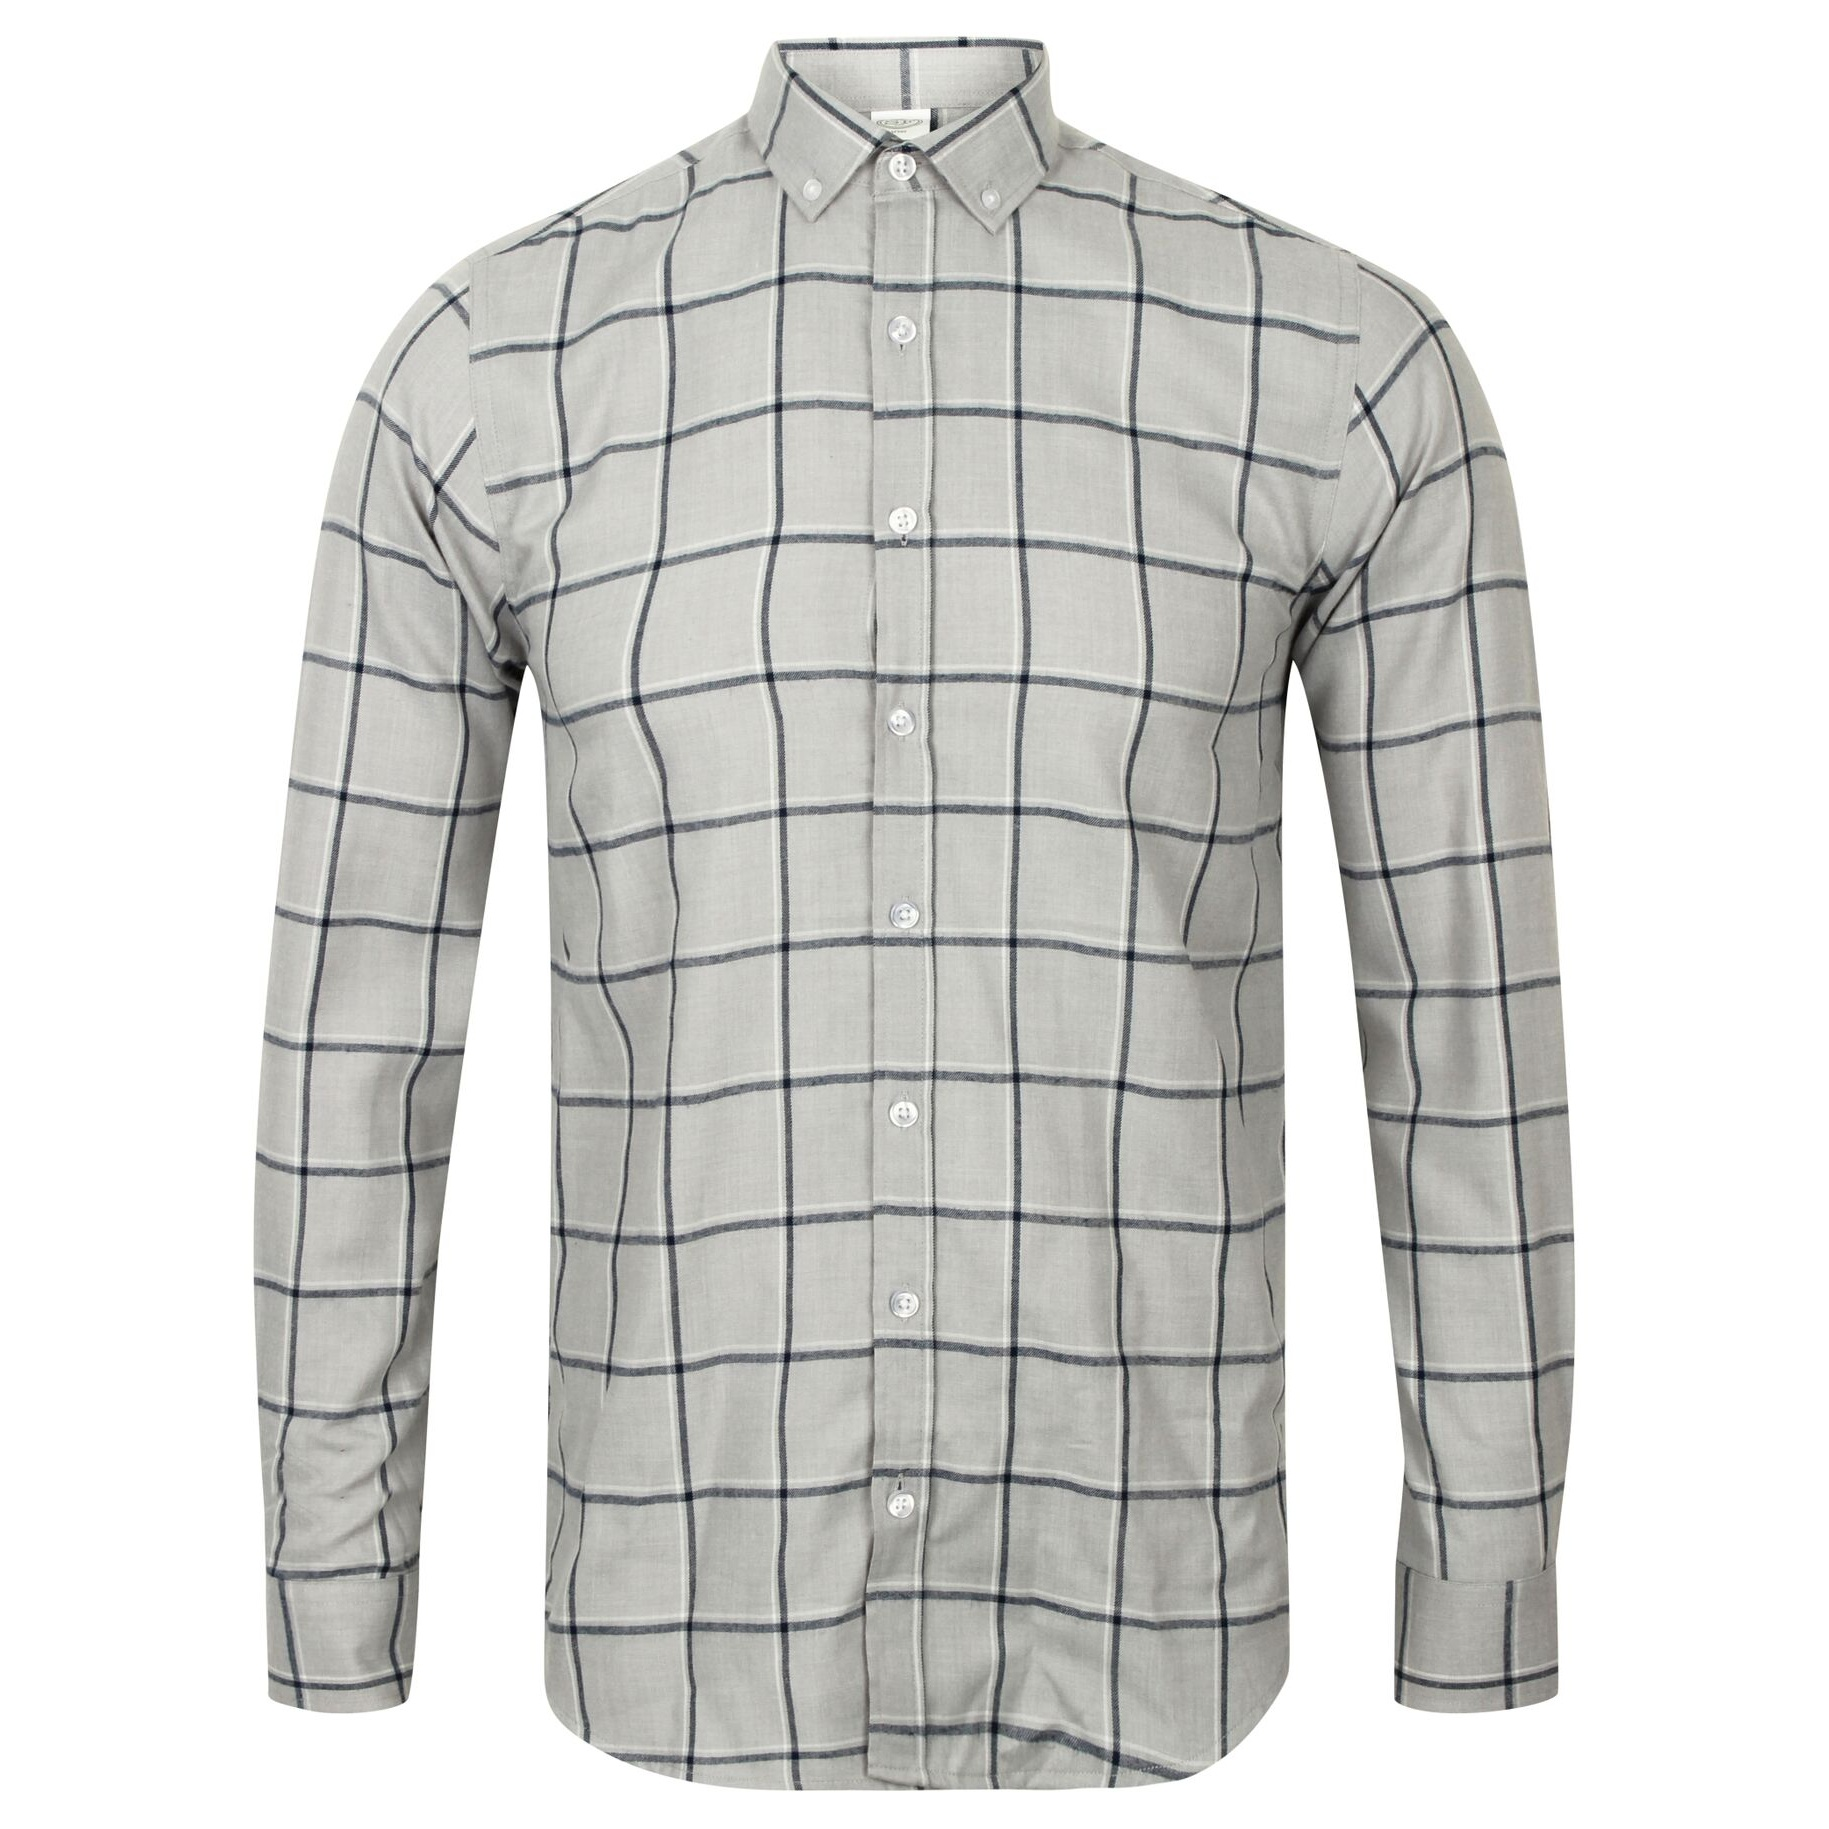 Skinni Fit Mens Brushed Check Casual Long Sleeve Shirt (L) (Light Grey Check)